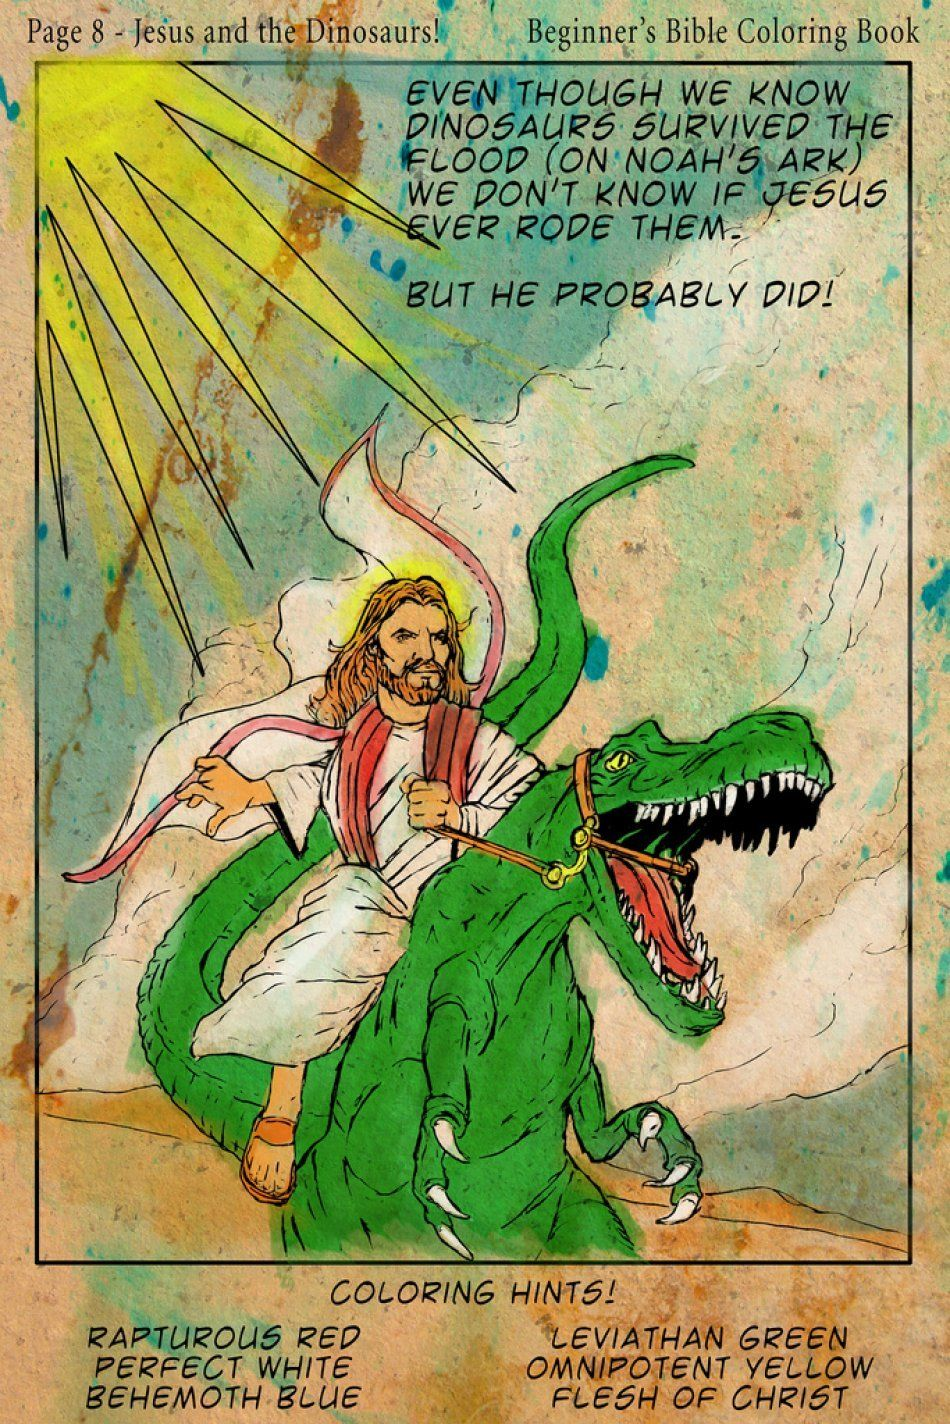 Hahahaha We Don't Know If Jesus Ever Rode Dinosaurs, But He